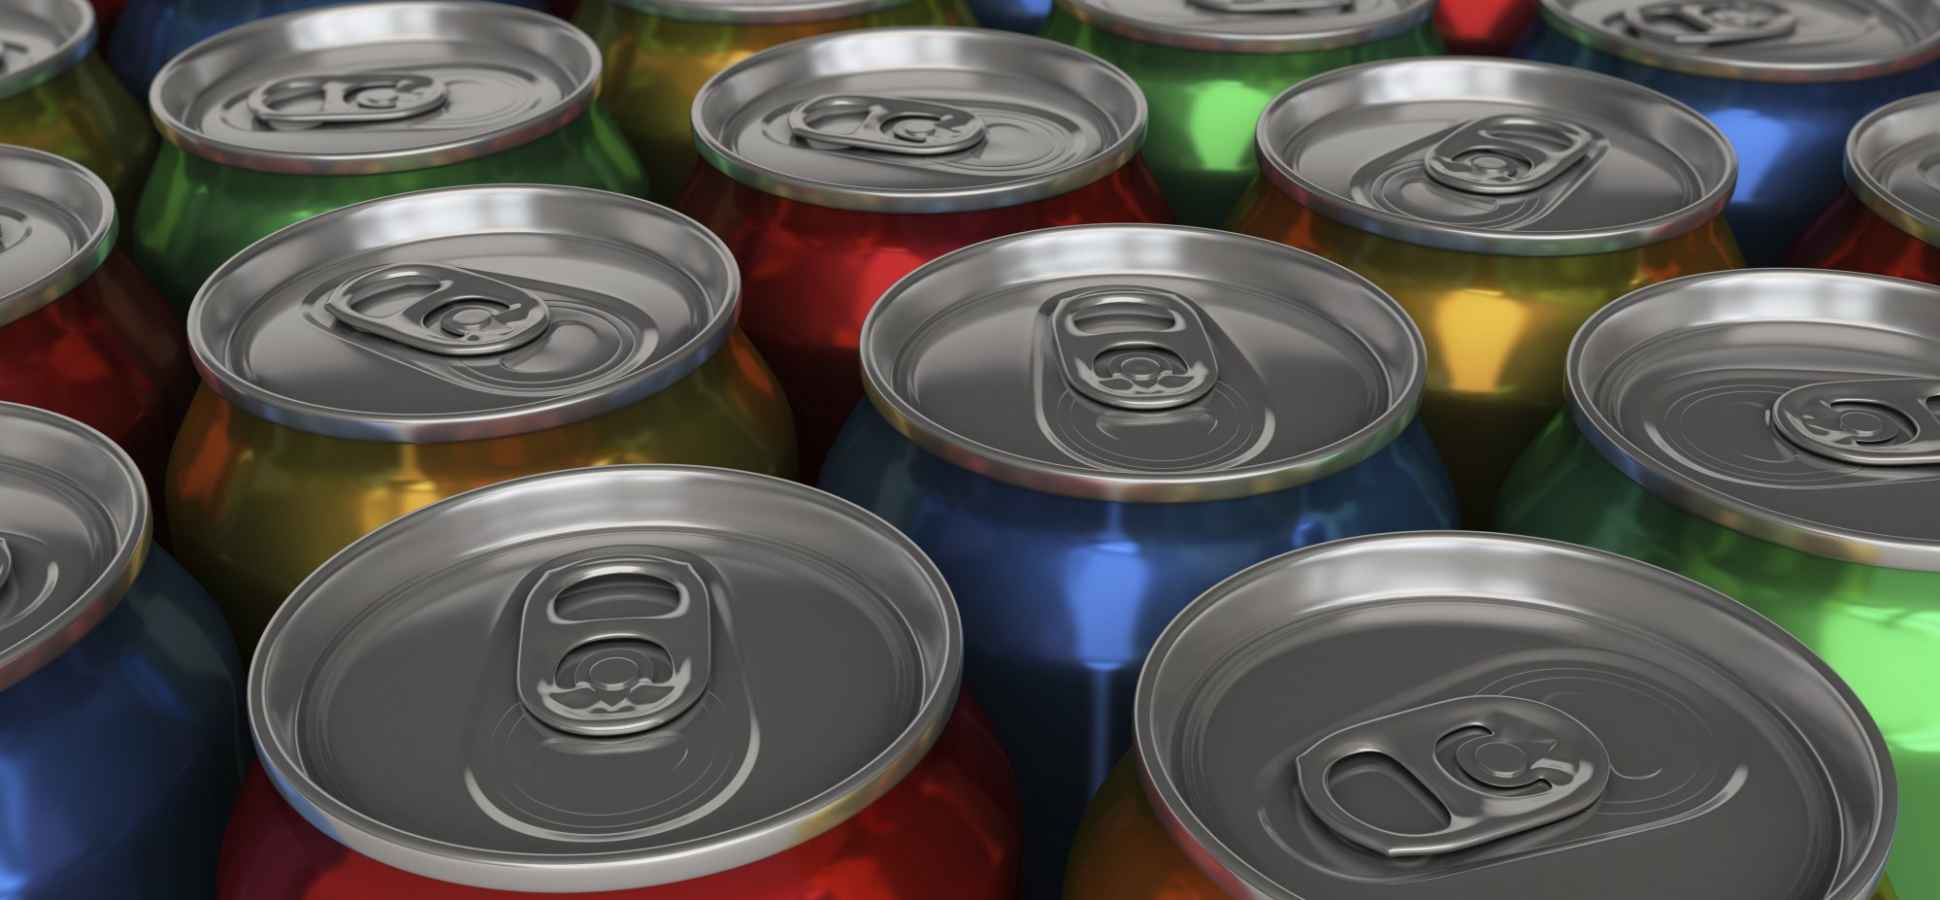 I've Quit Drinking Soda After Reading These 2 Scientific Studies (Though Not for the Reason You'd Think)